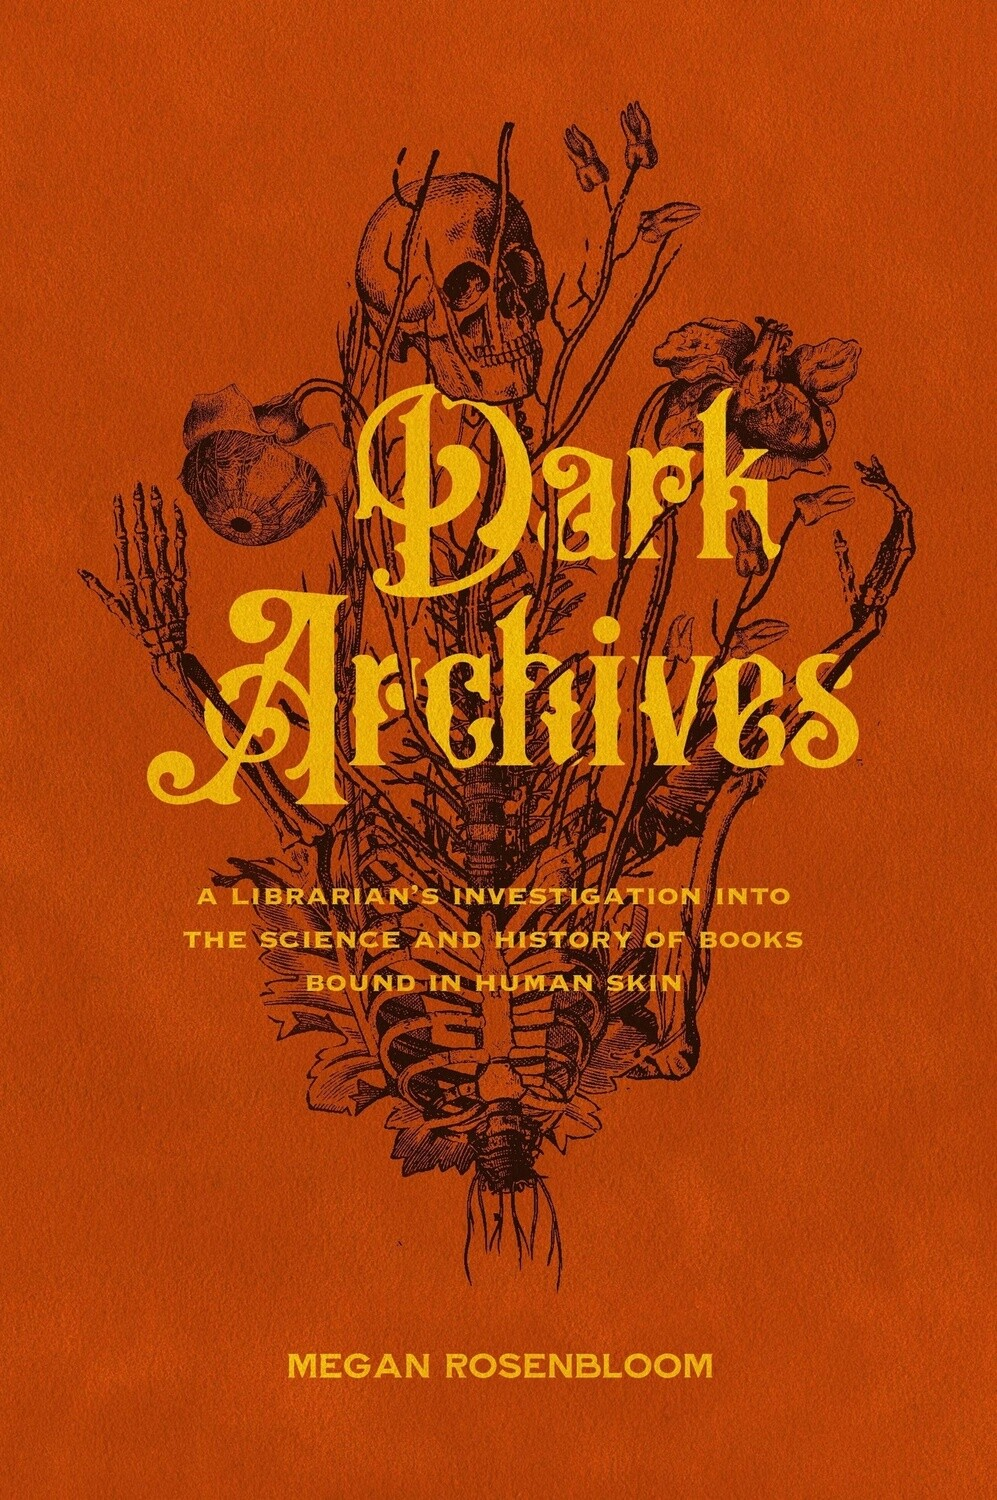 Dark Archives: A Librarian's Investigation into the Science and History of Books Bound in Human Skin *SIGNED COPY*